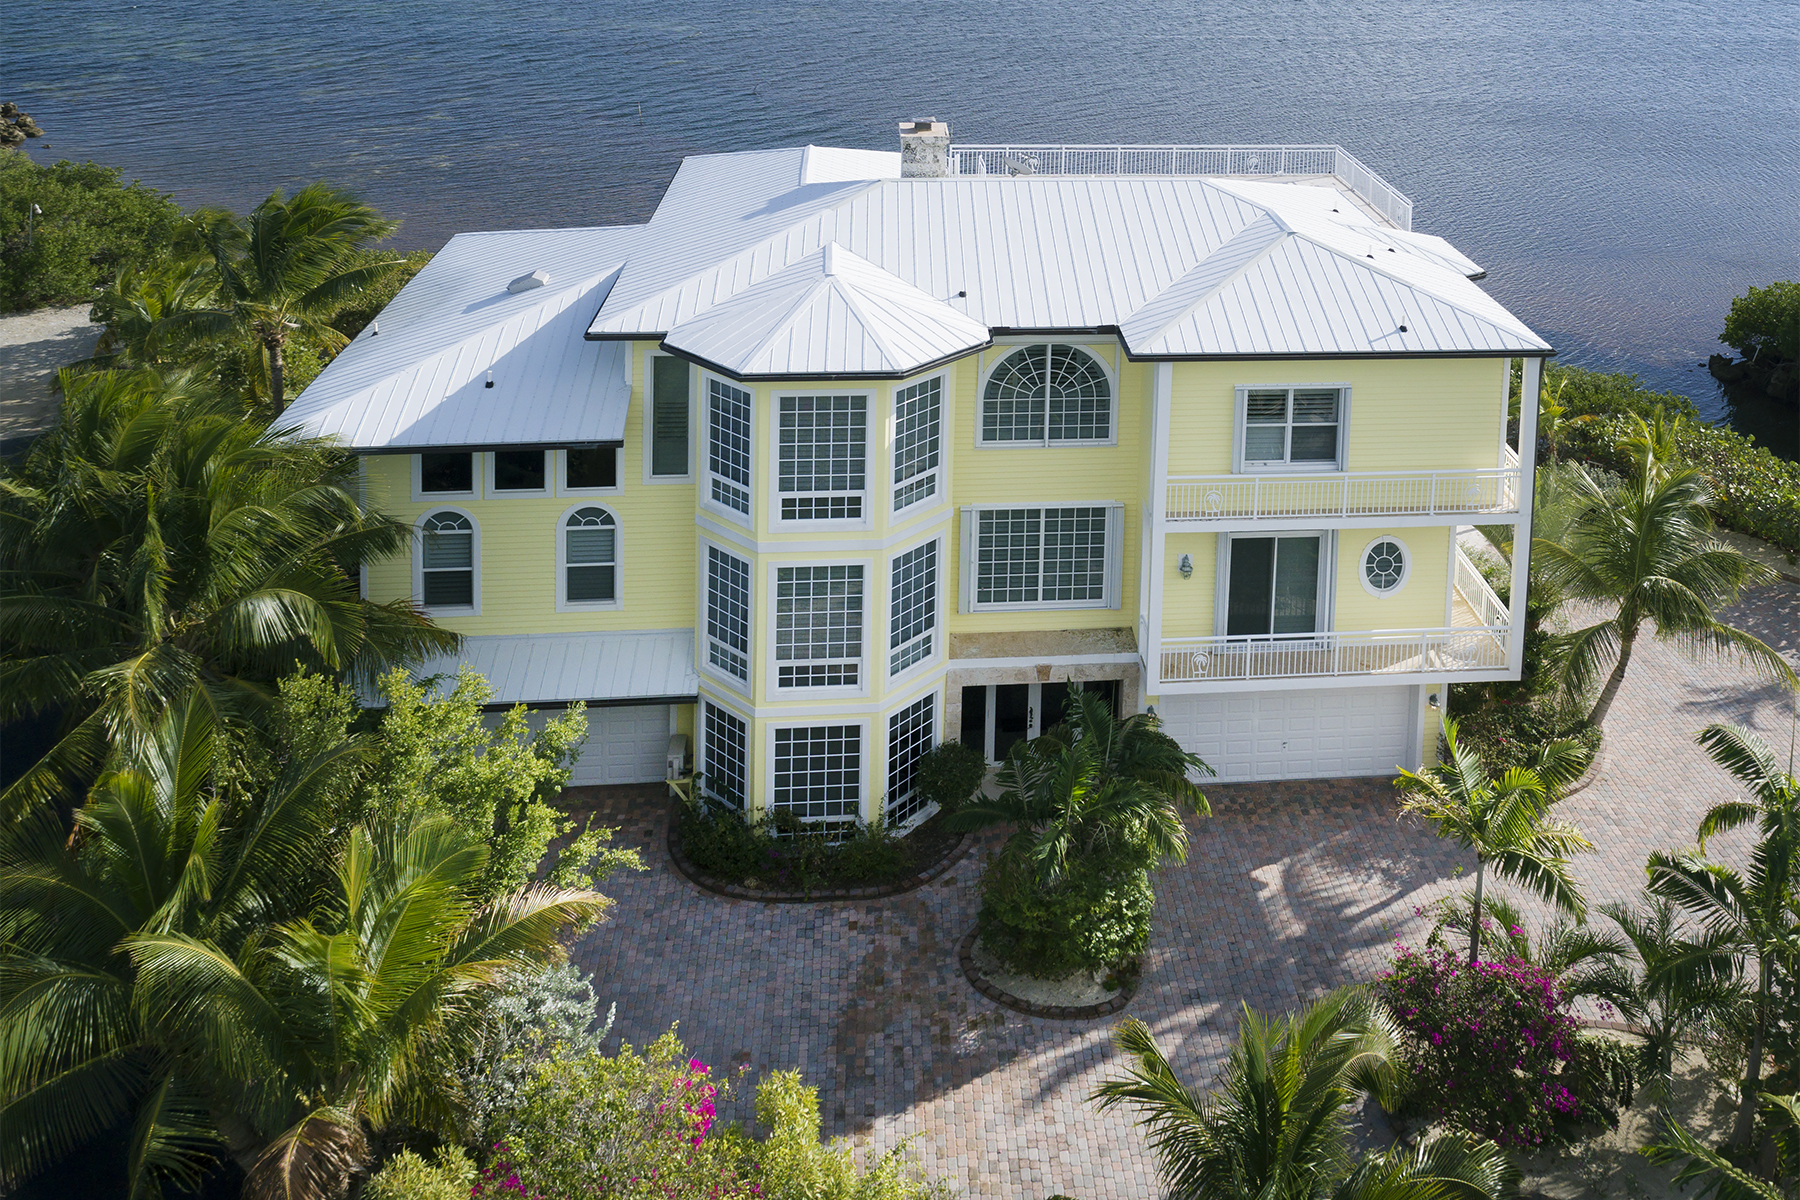 Casa Unifamiliar por un Venta en Oceanfront Home with Guest House 97251 Overseas Highway North Side Key Largo, Florida, 33037 Estados Unidos